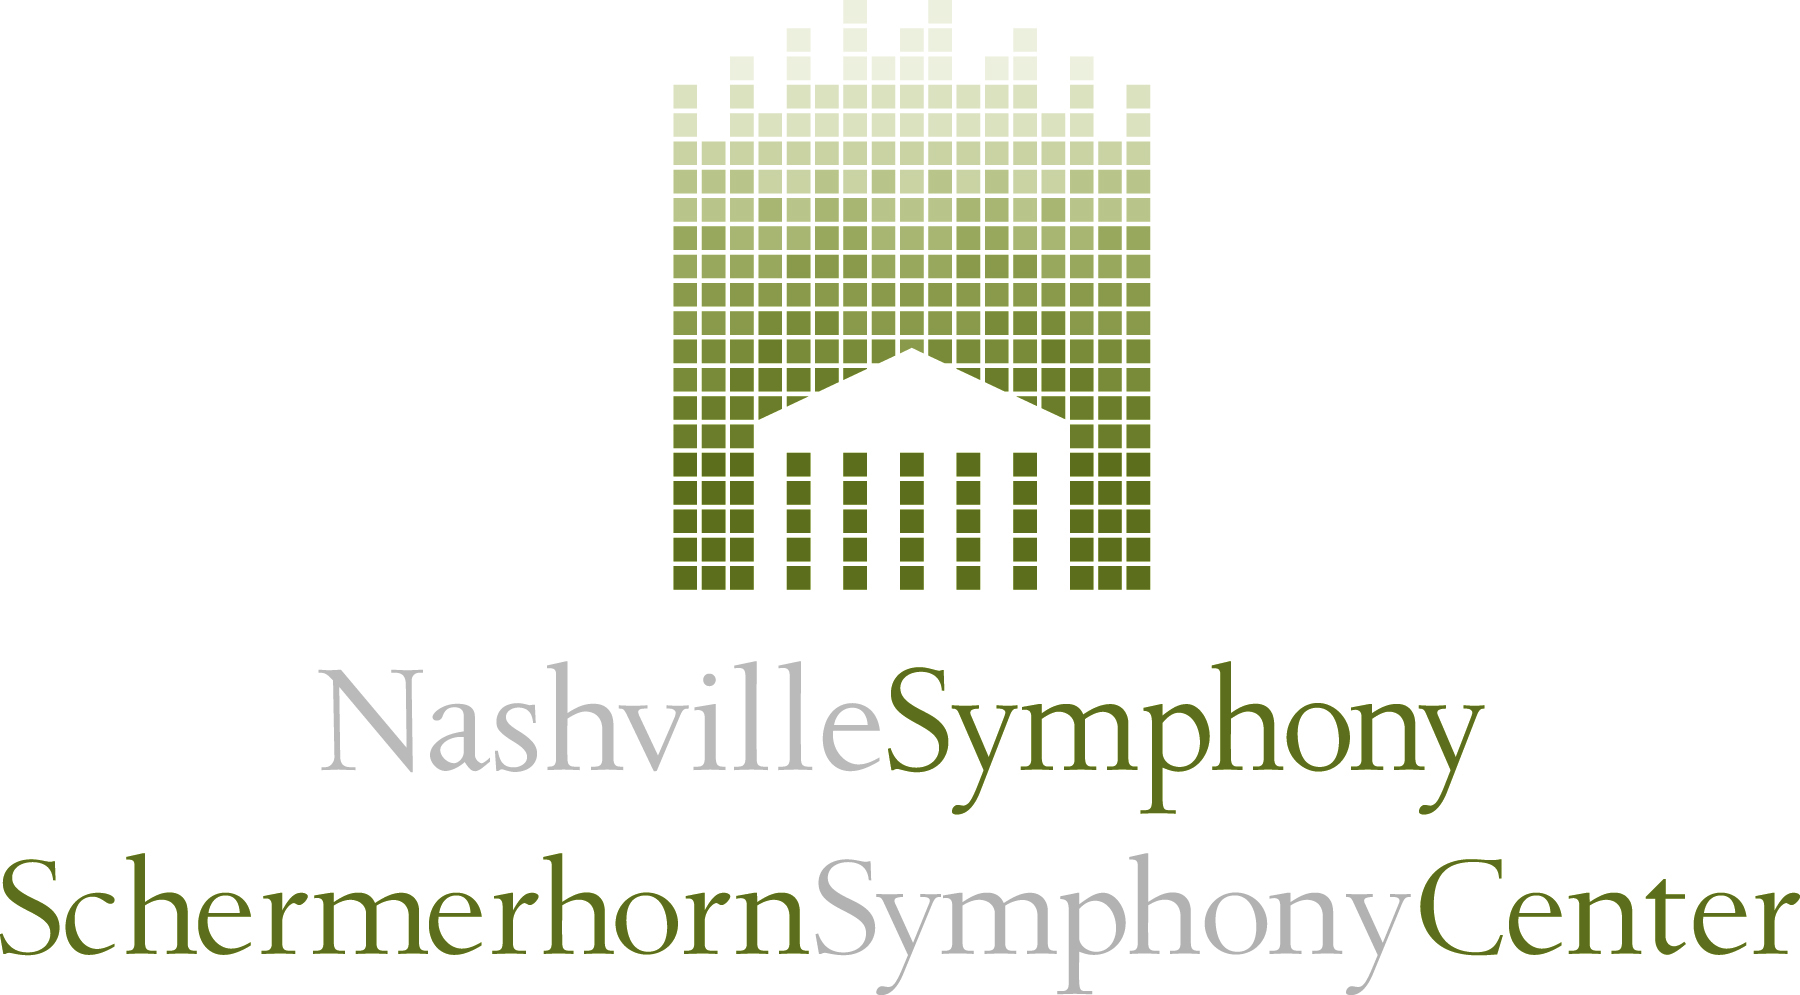 Nashville Symphony & SSC logo-high-res.jpg